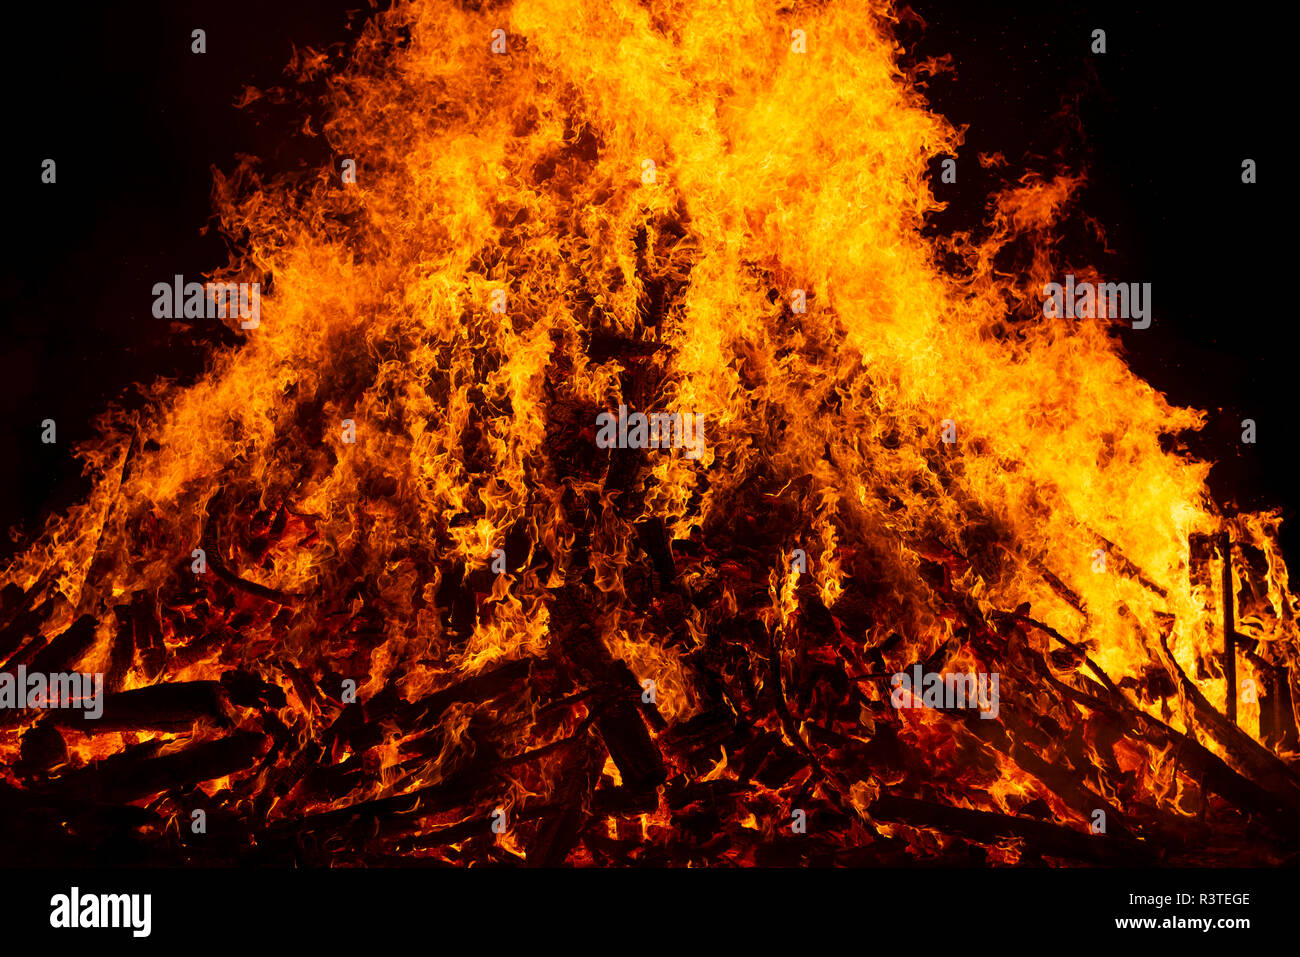 Blazing log fire, close-up Stock Photo